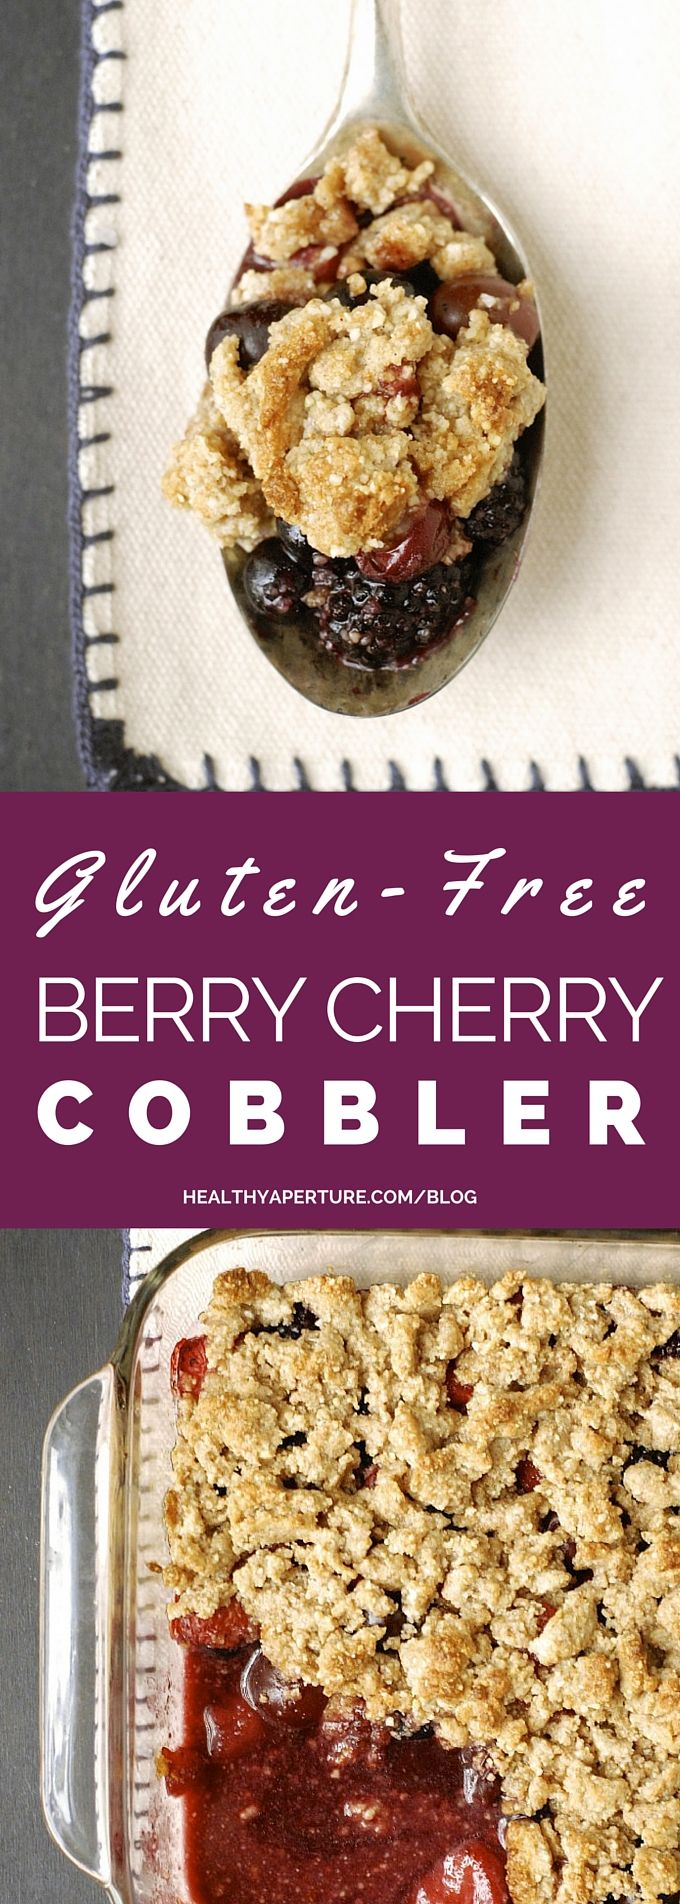 This Gluten-Free Berry Cherry Cobbler is a delicious dessert that takes just a few minutes to assemble and even fewer to eat!